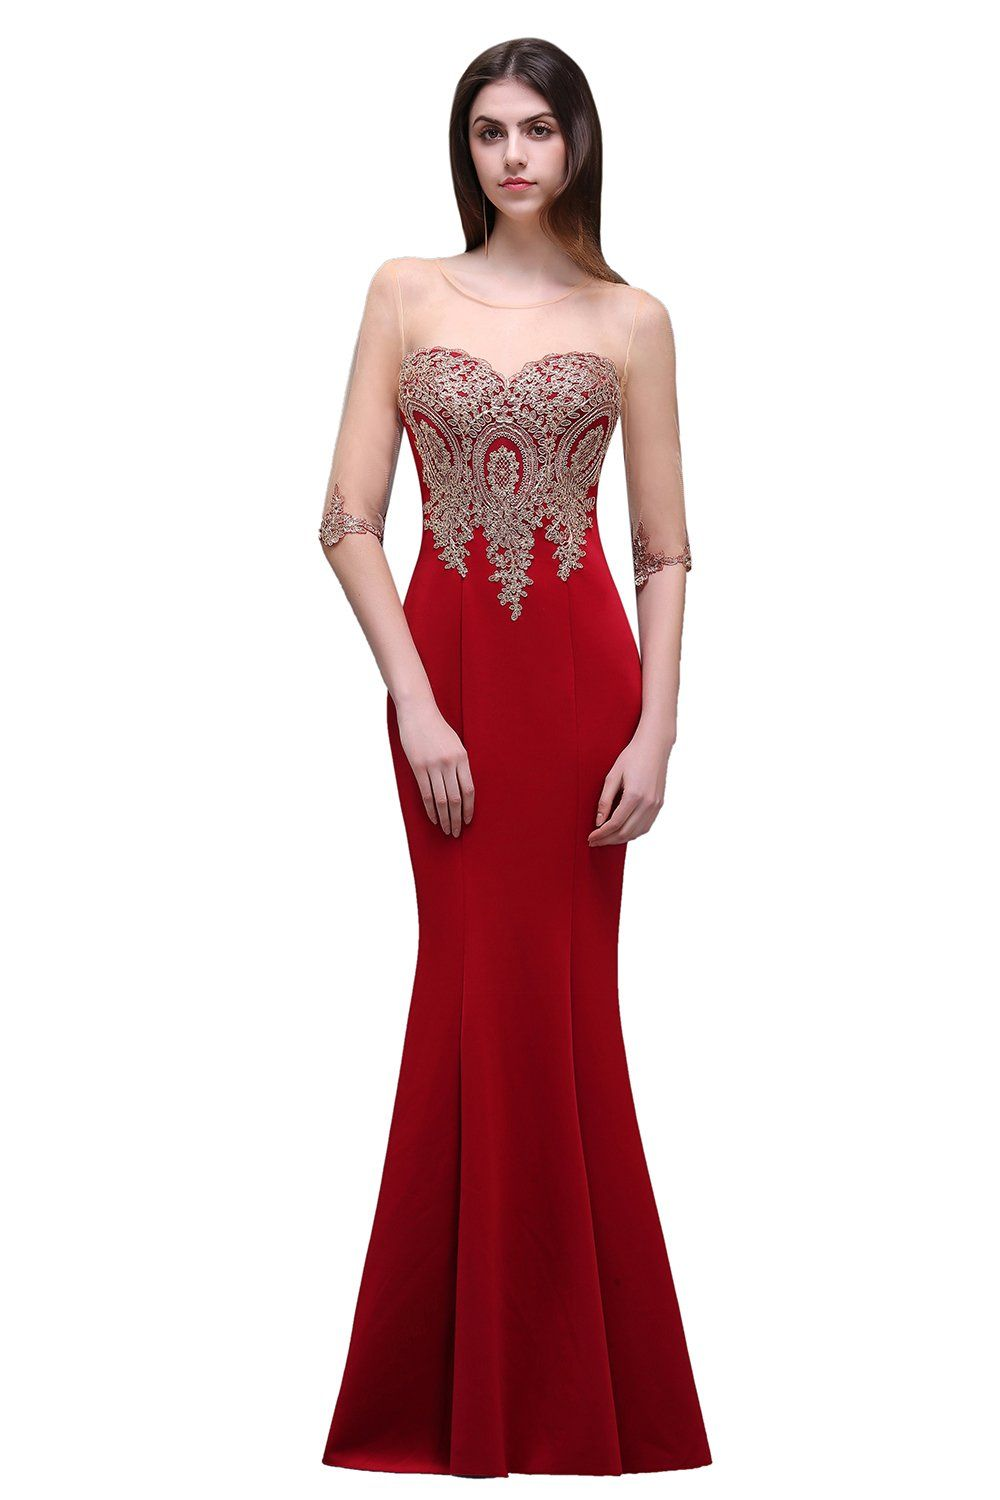 Misshow womenus red lace applique long formal mermaid evening prom